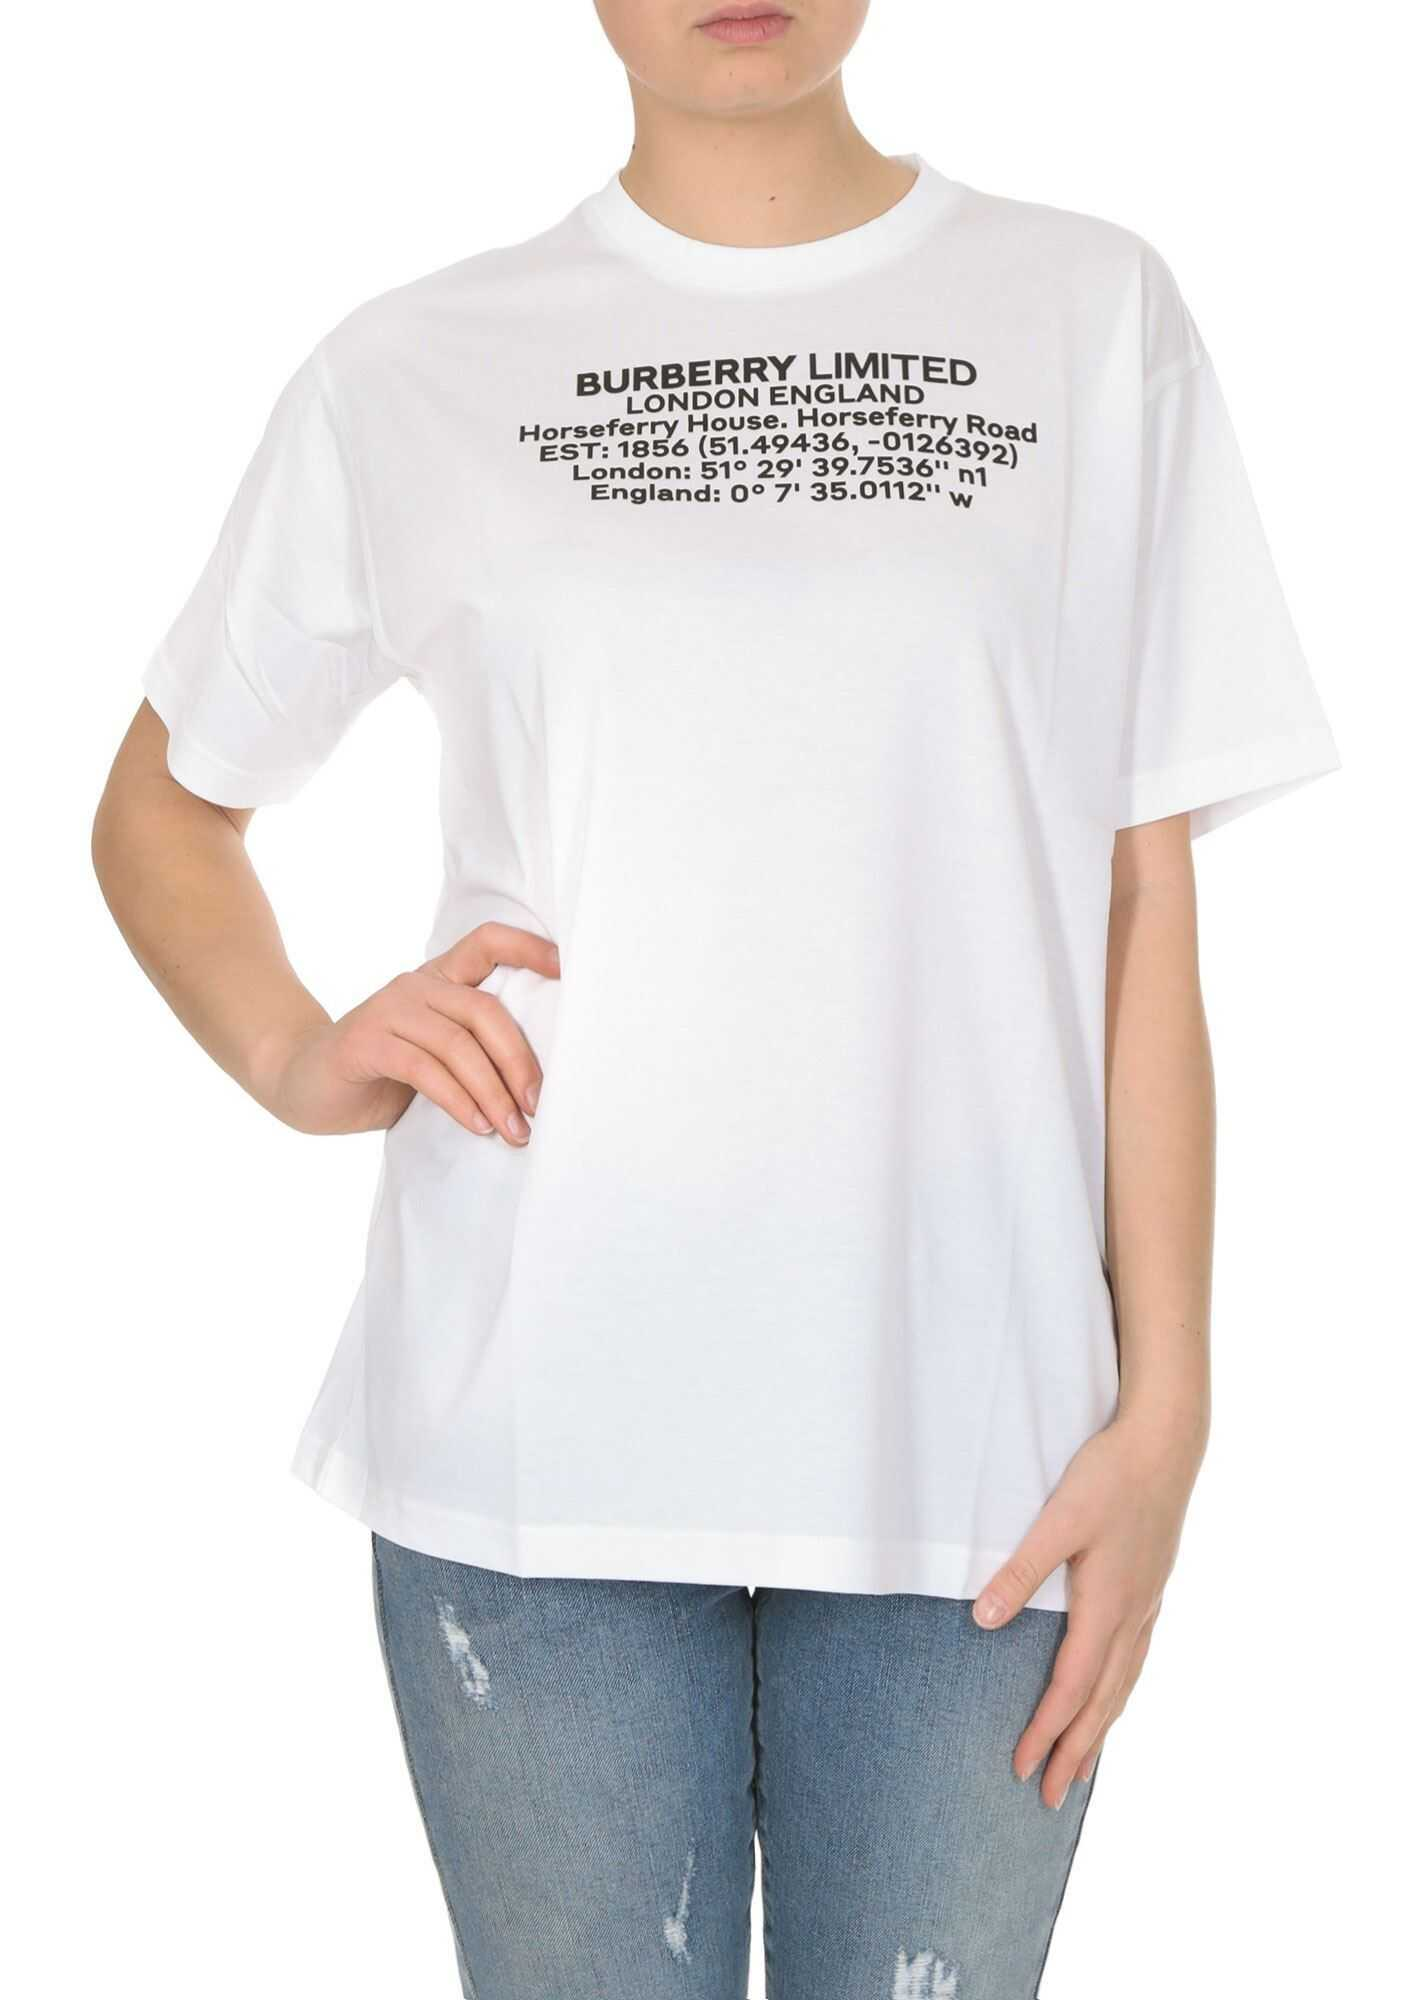 Burberry T-Shirt In White With Geographic Coordinates Print White